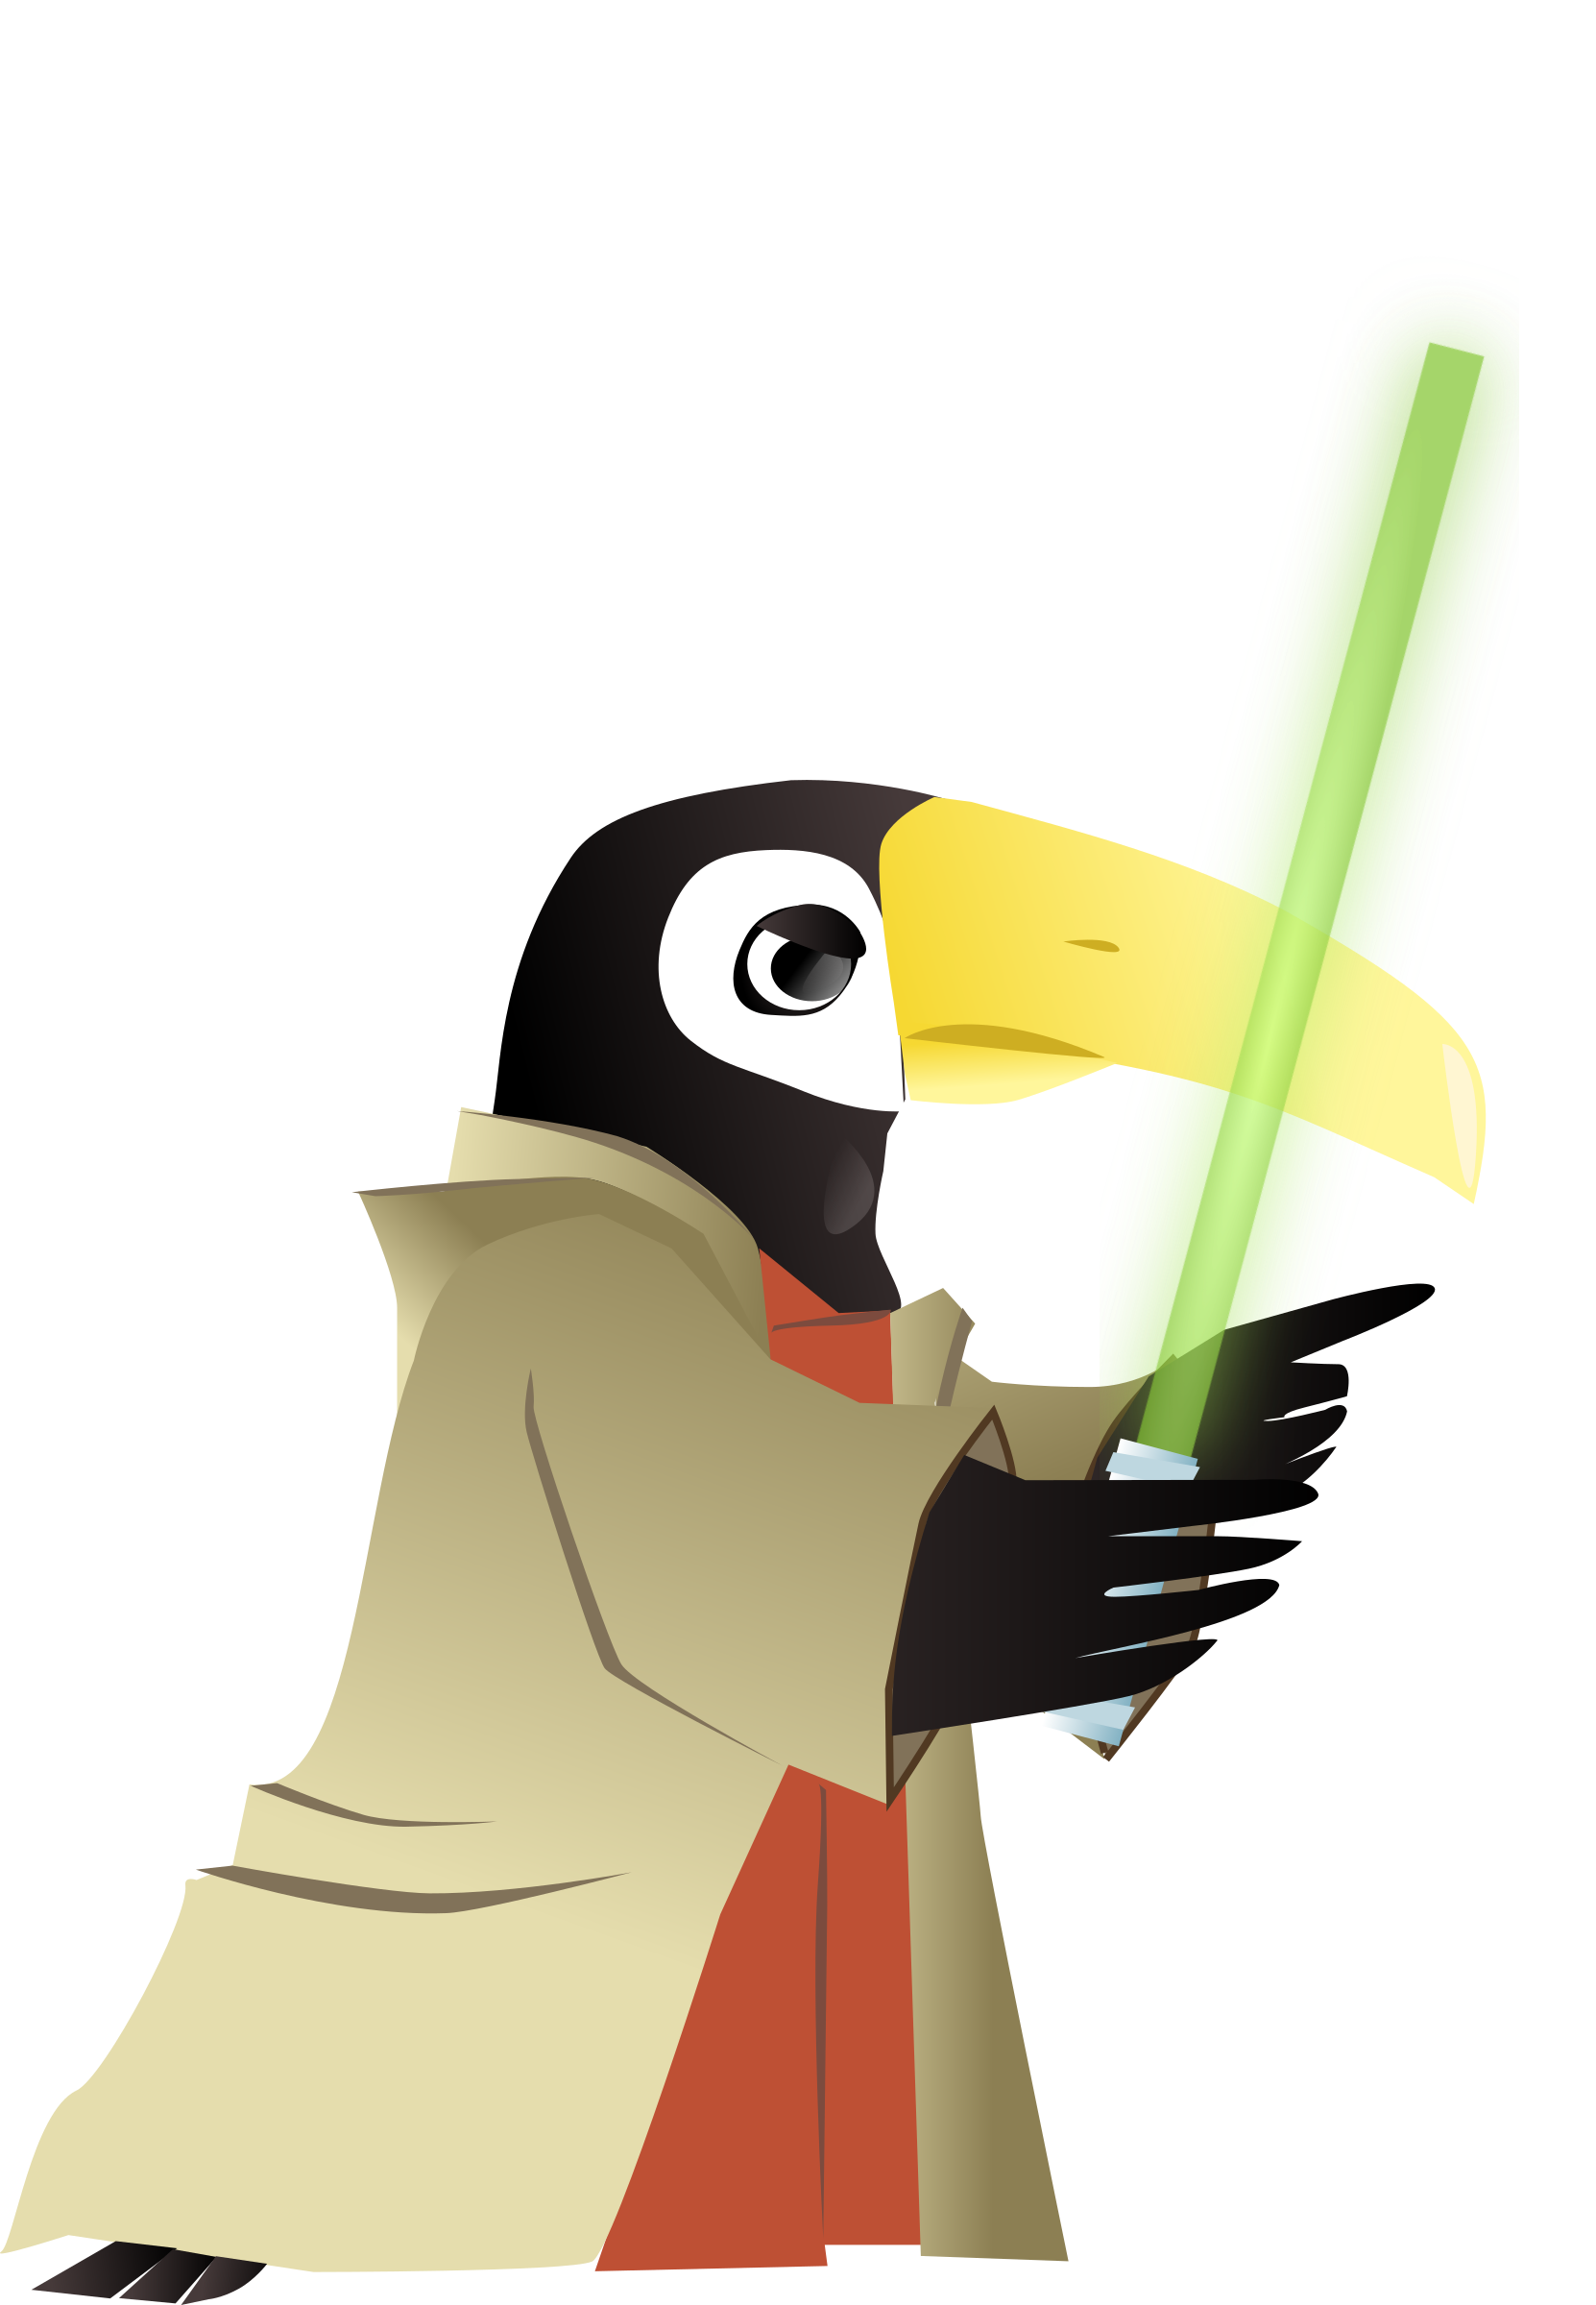 Toucan jedi master big. Starwars clipart animated